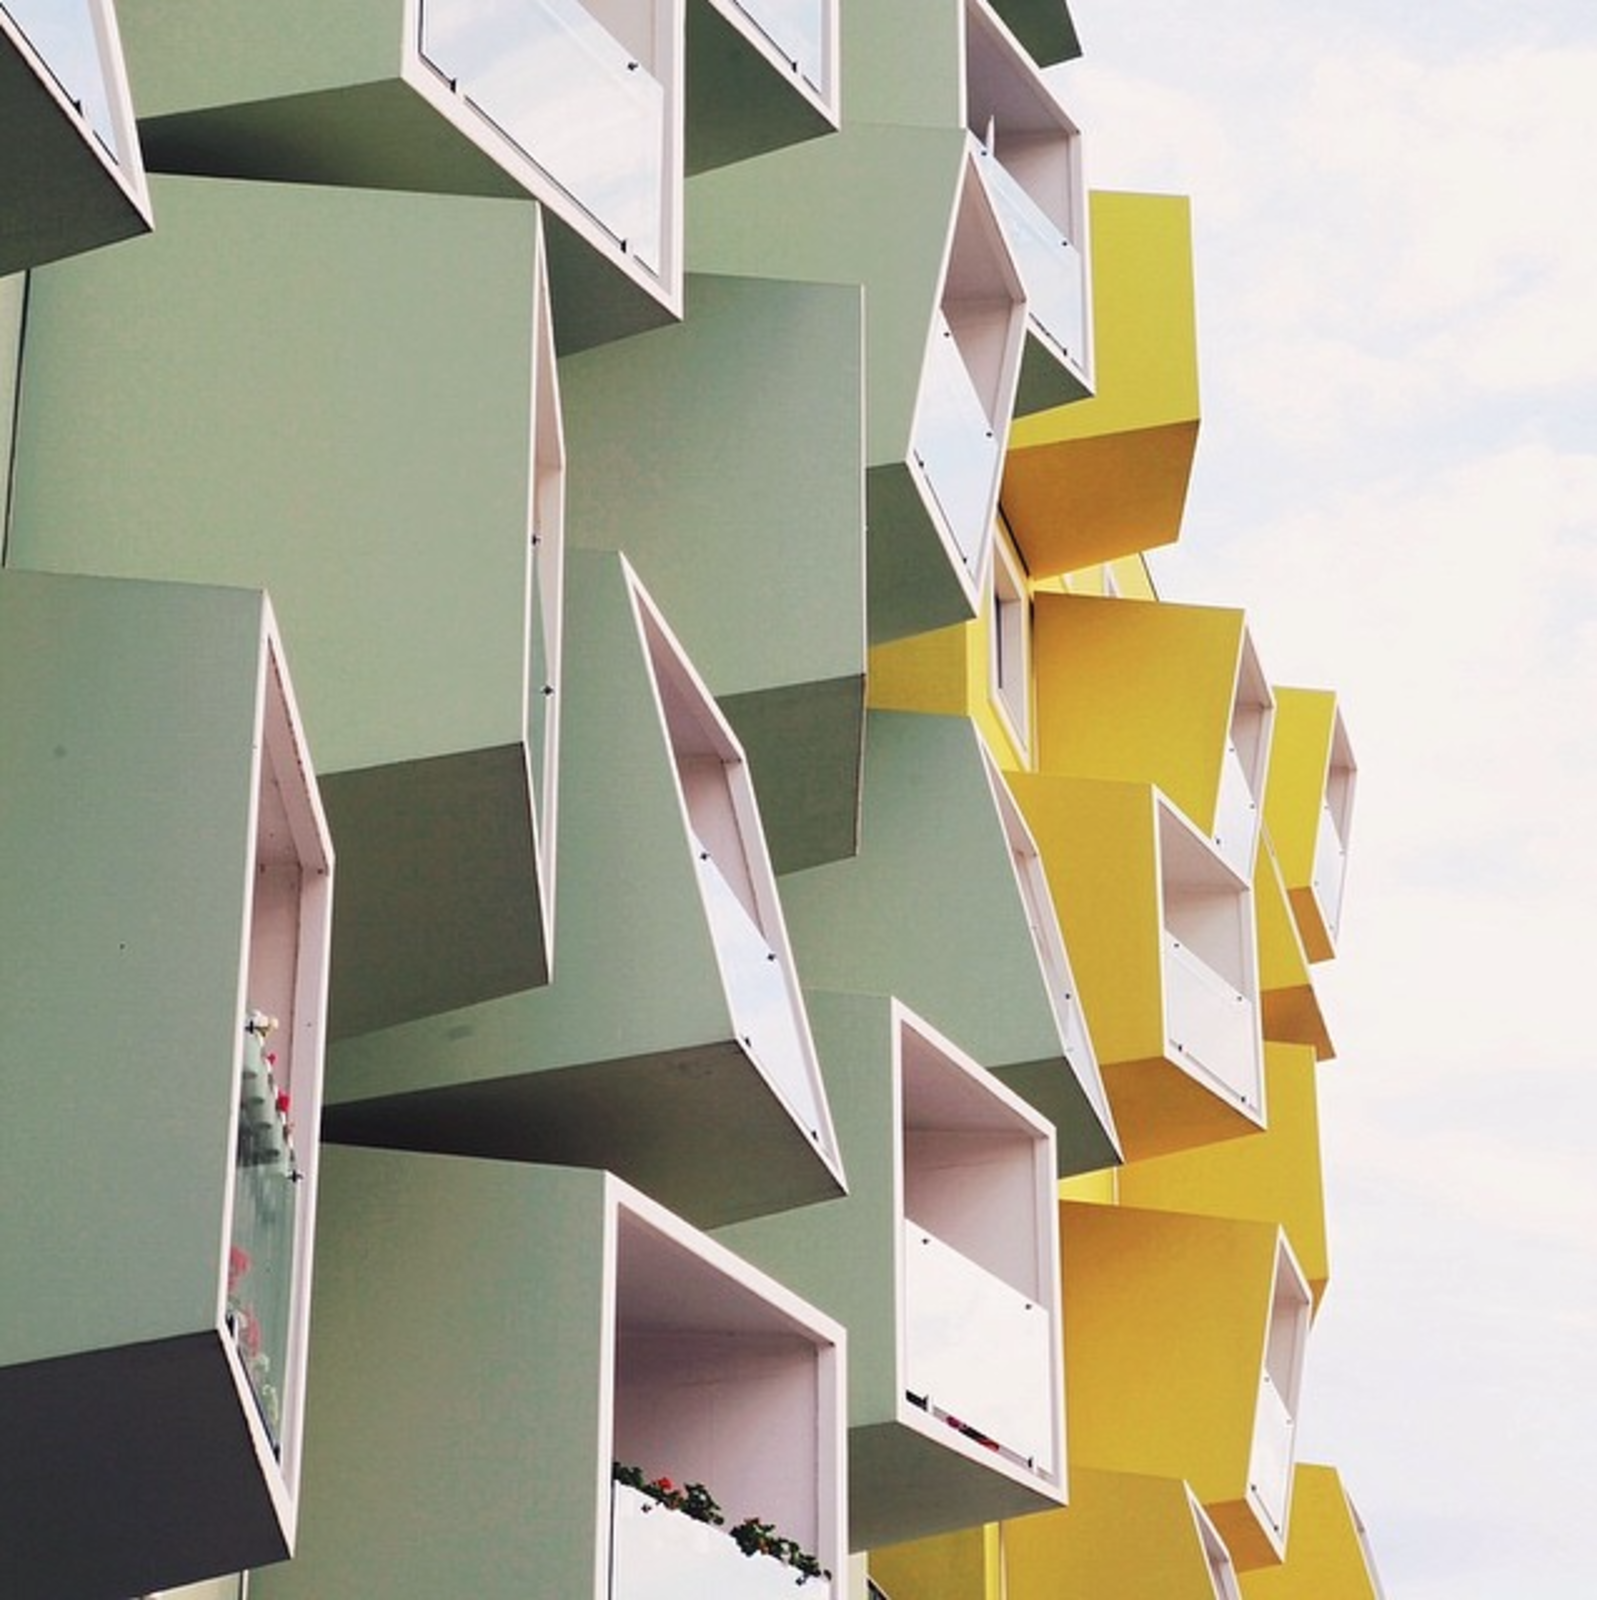 Apartment balconies in Copenhagen, Denmark.  Modern Danish Homes We Love by Aileen Kwun from Instagram Account We Love: Colorful Architecture Snapshots of Cities